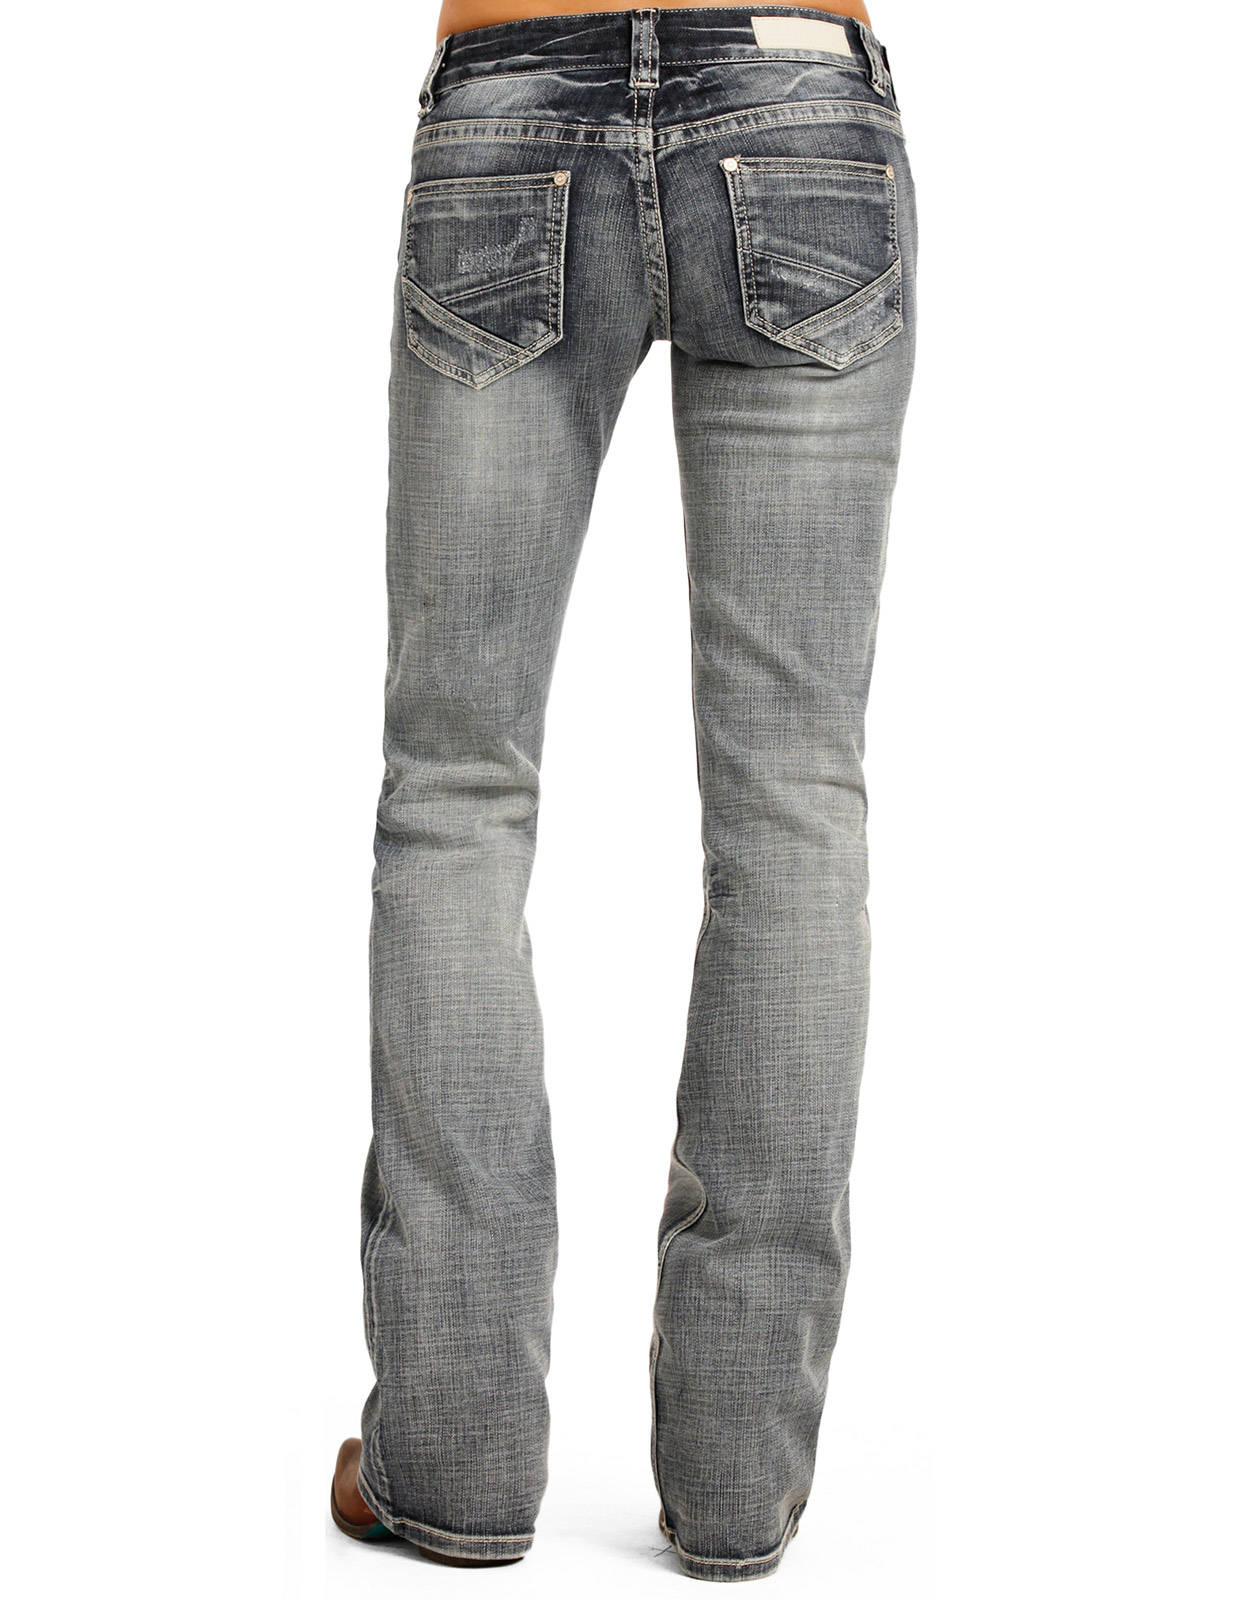 Low rise slim boot cut jeans